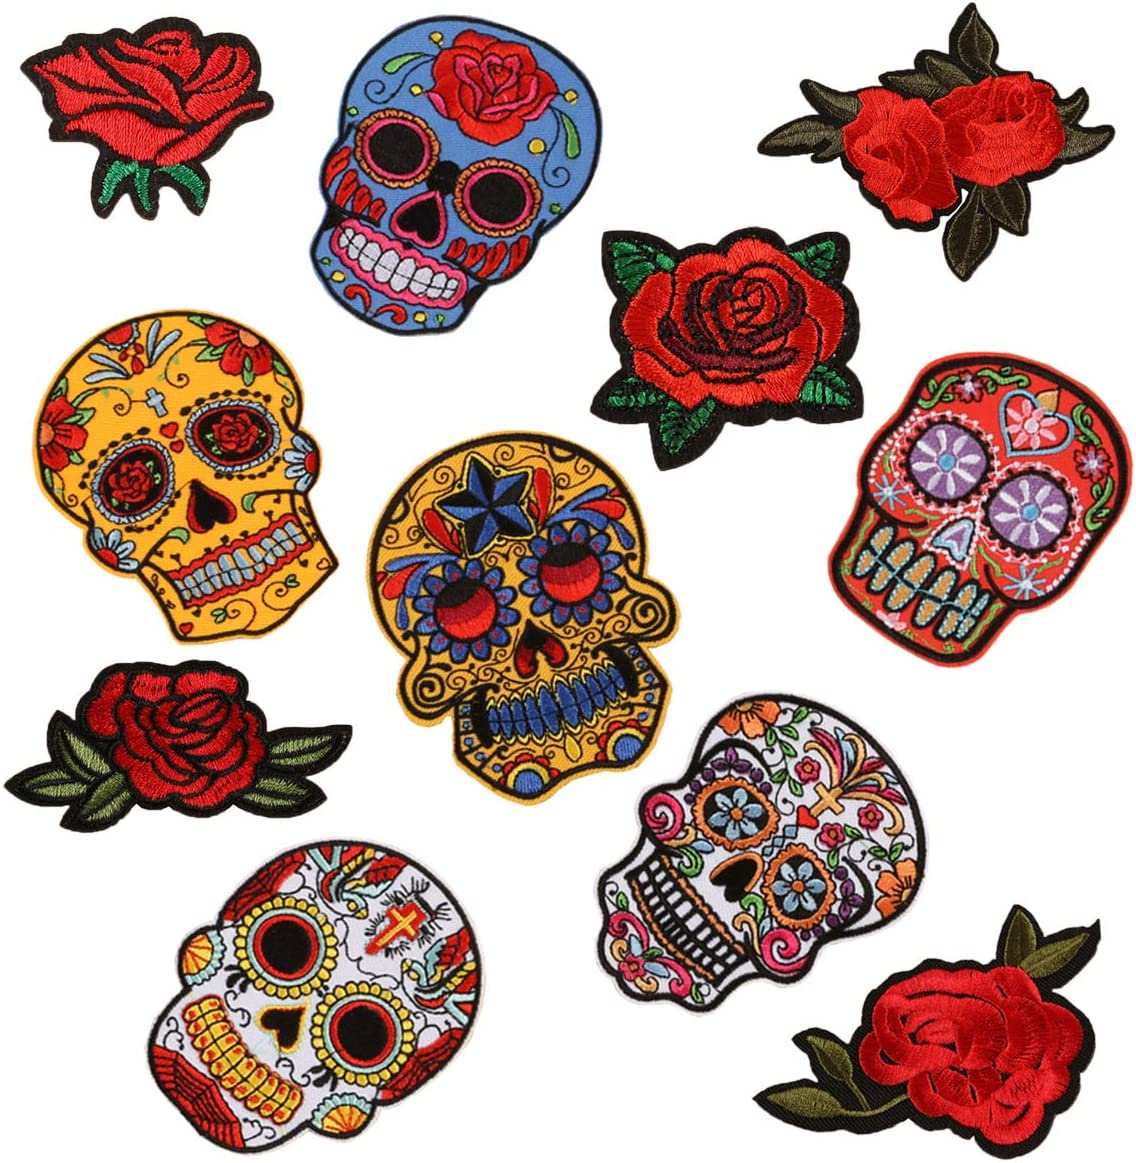 Skull Rose Patches At the price Sugar Memphis Mall Embroidery Appliqu Flowers On Sew